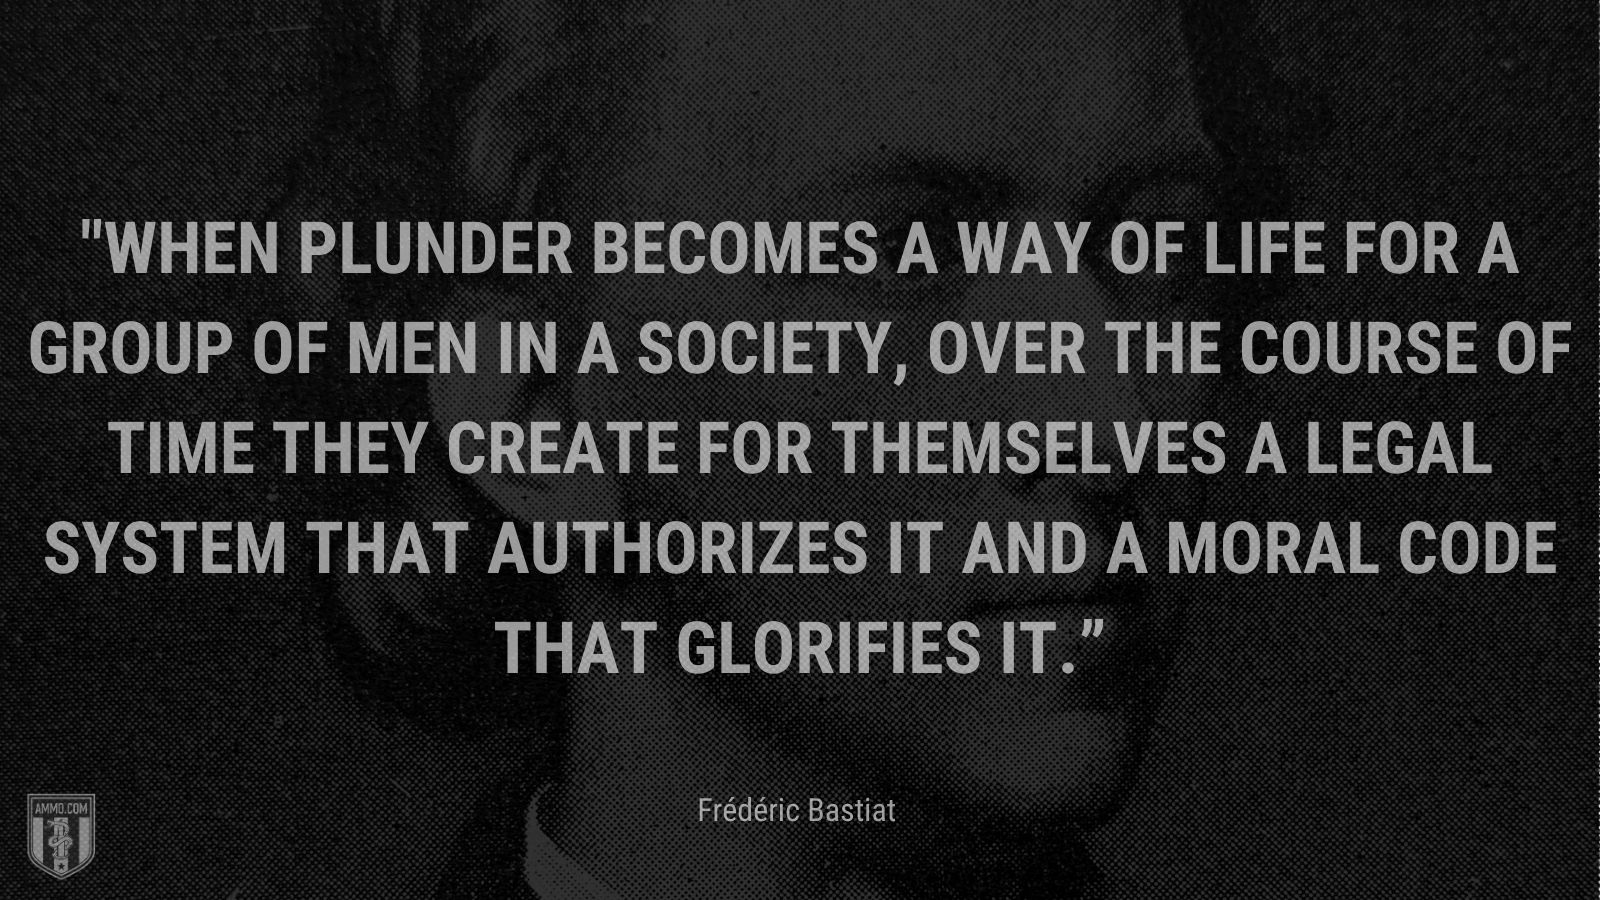 """""""When plunder becomes a way of life for a group of men in a society, over the course of time they create for themselves a legal system that authorizes it and a moral code that glorifies it."""" - Frédéric Bastiat"""